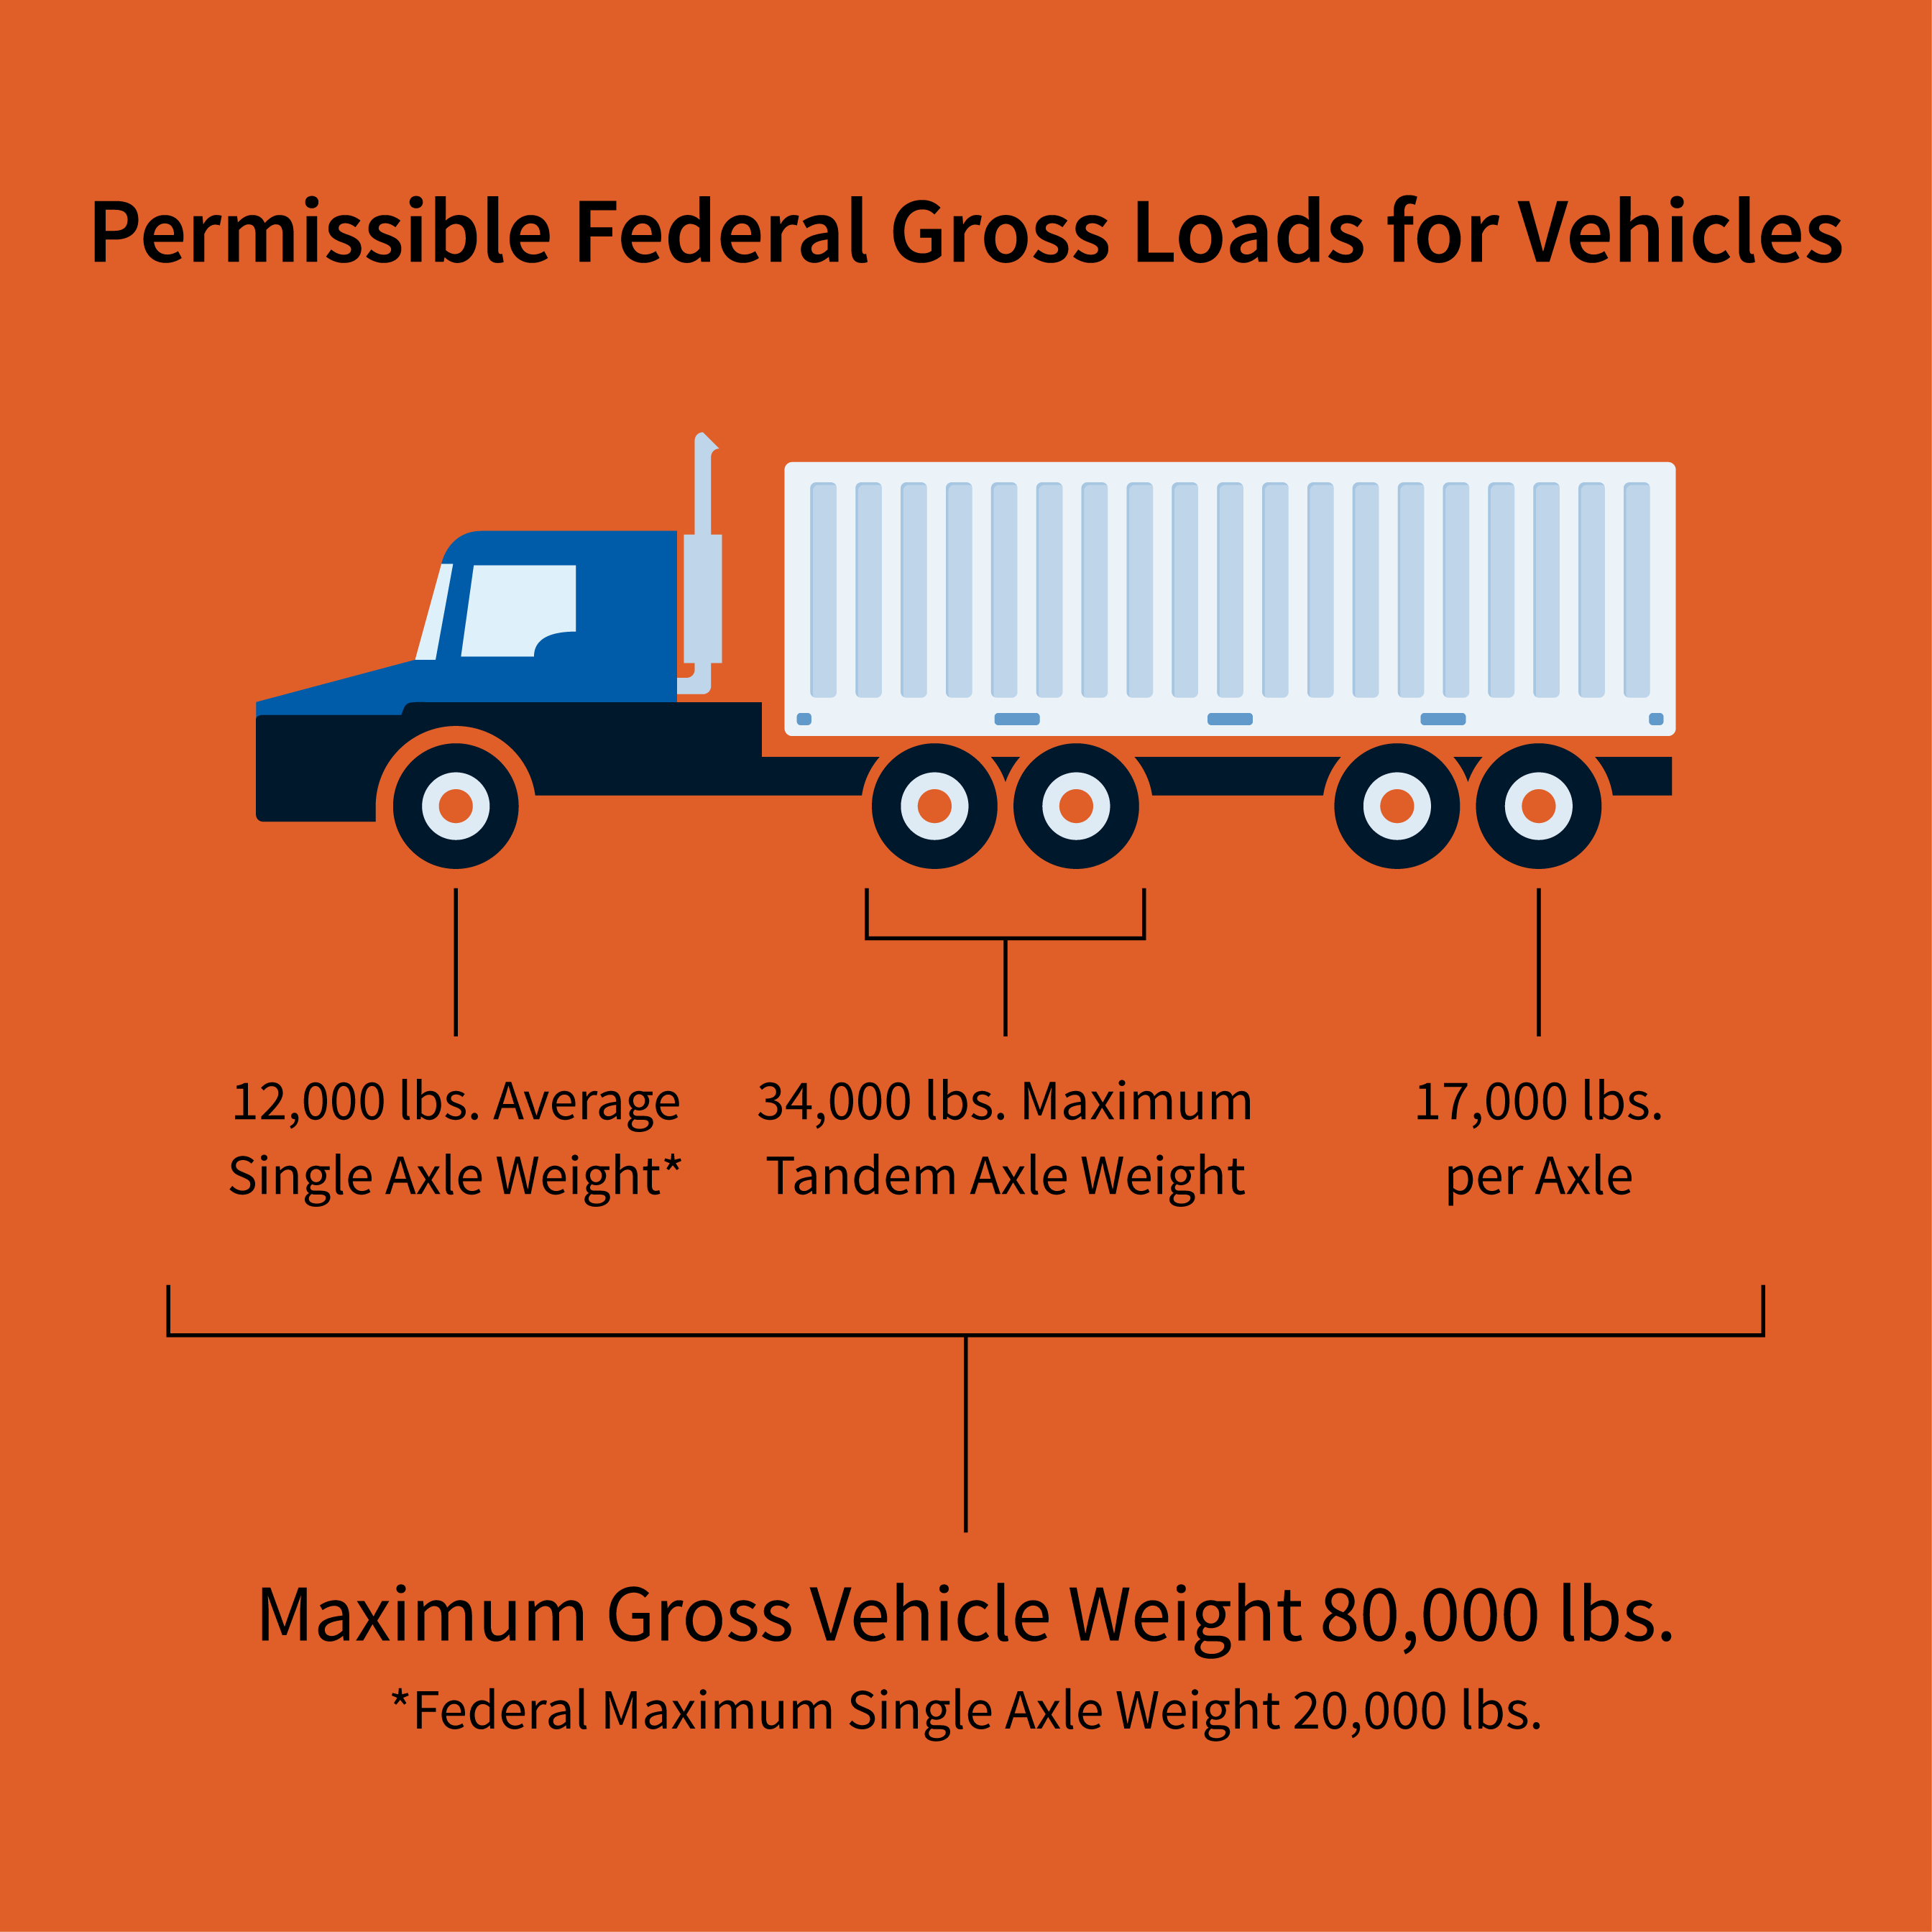 Century Express Permissible Federal Gross Loads for Vehicles